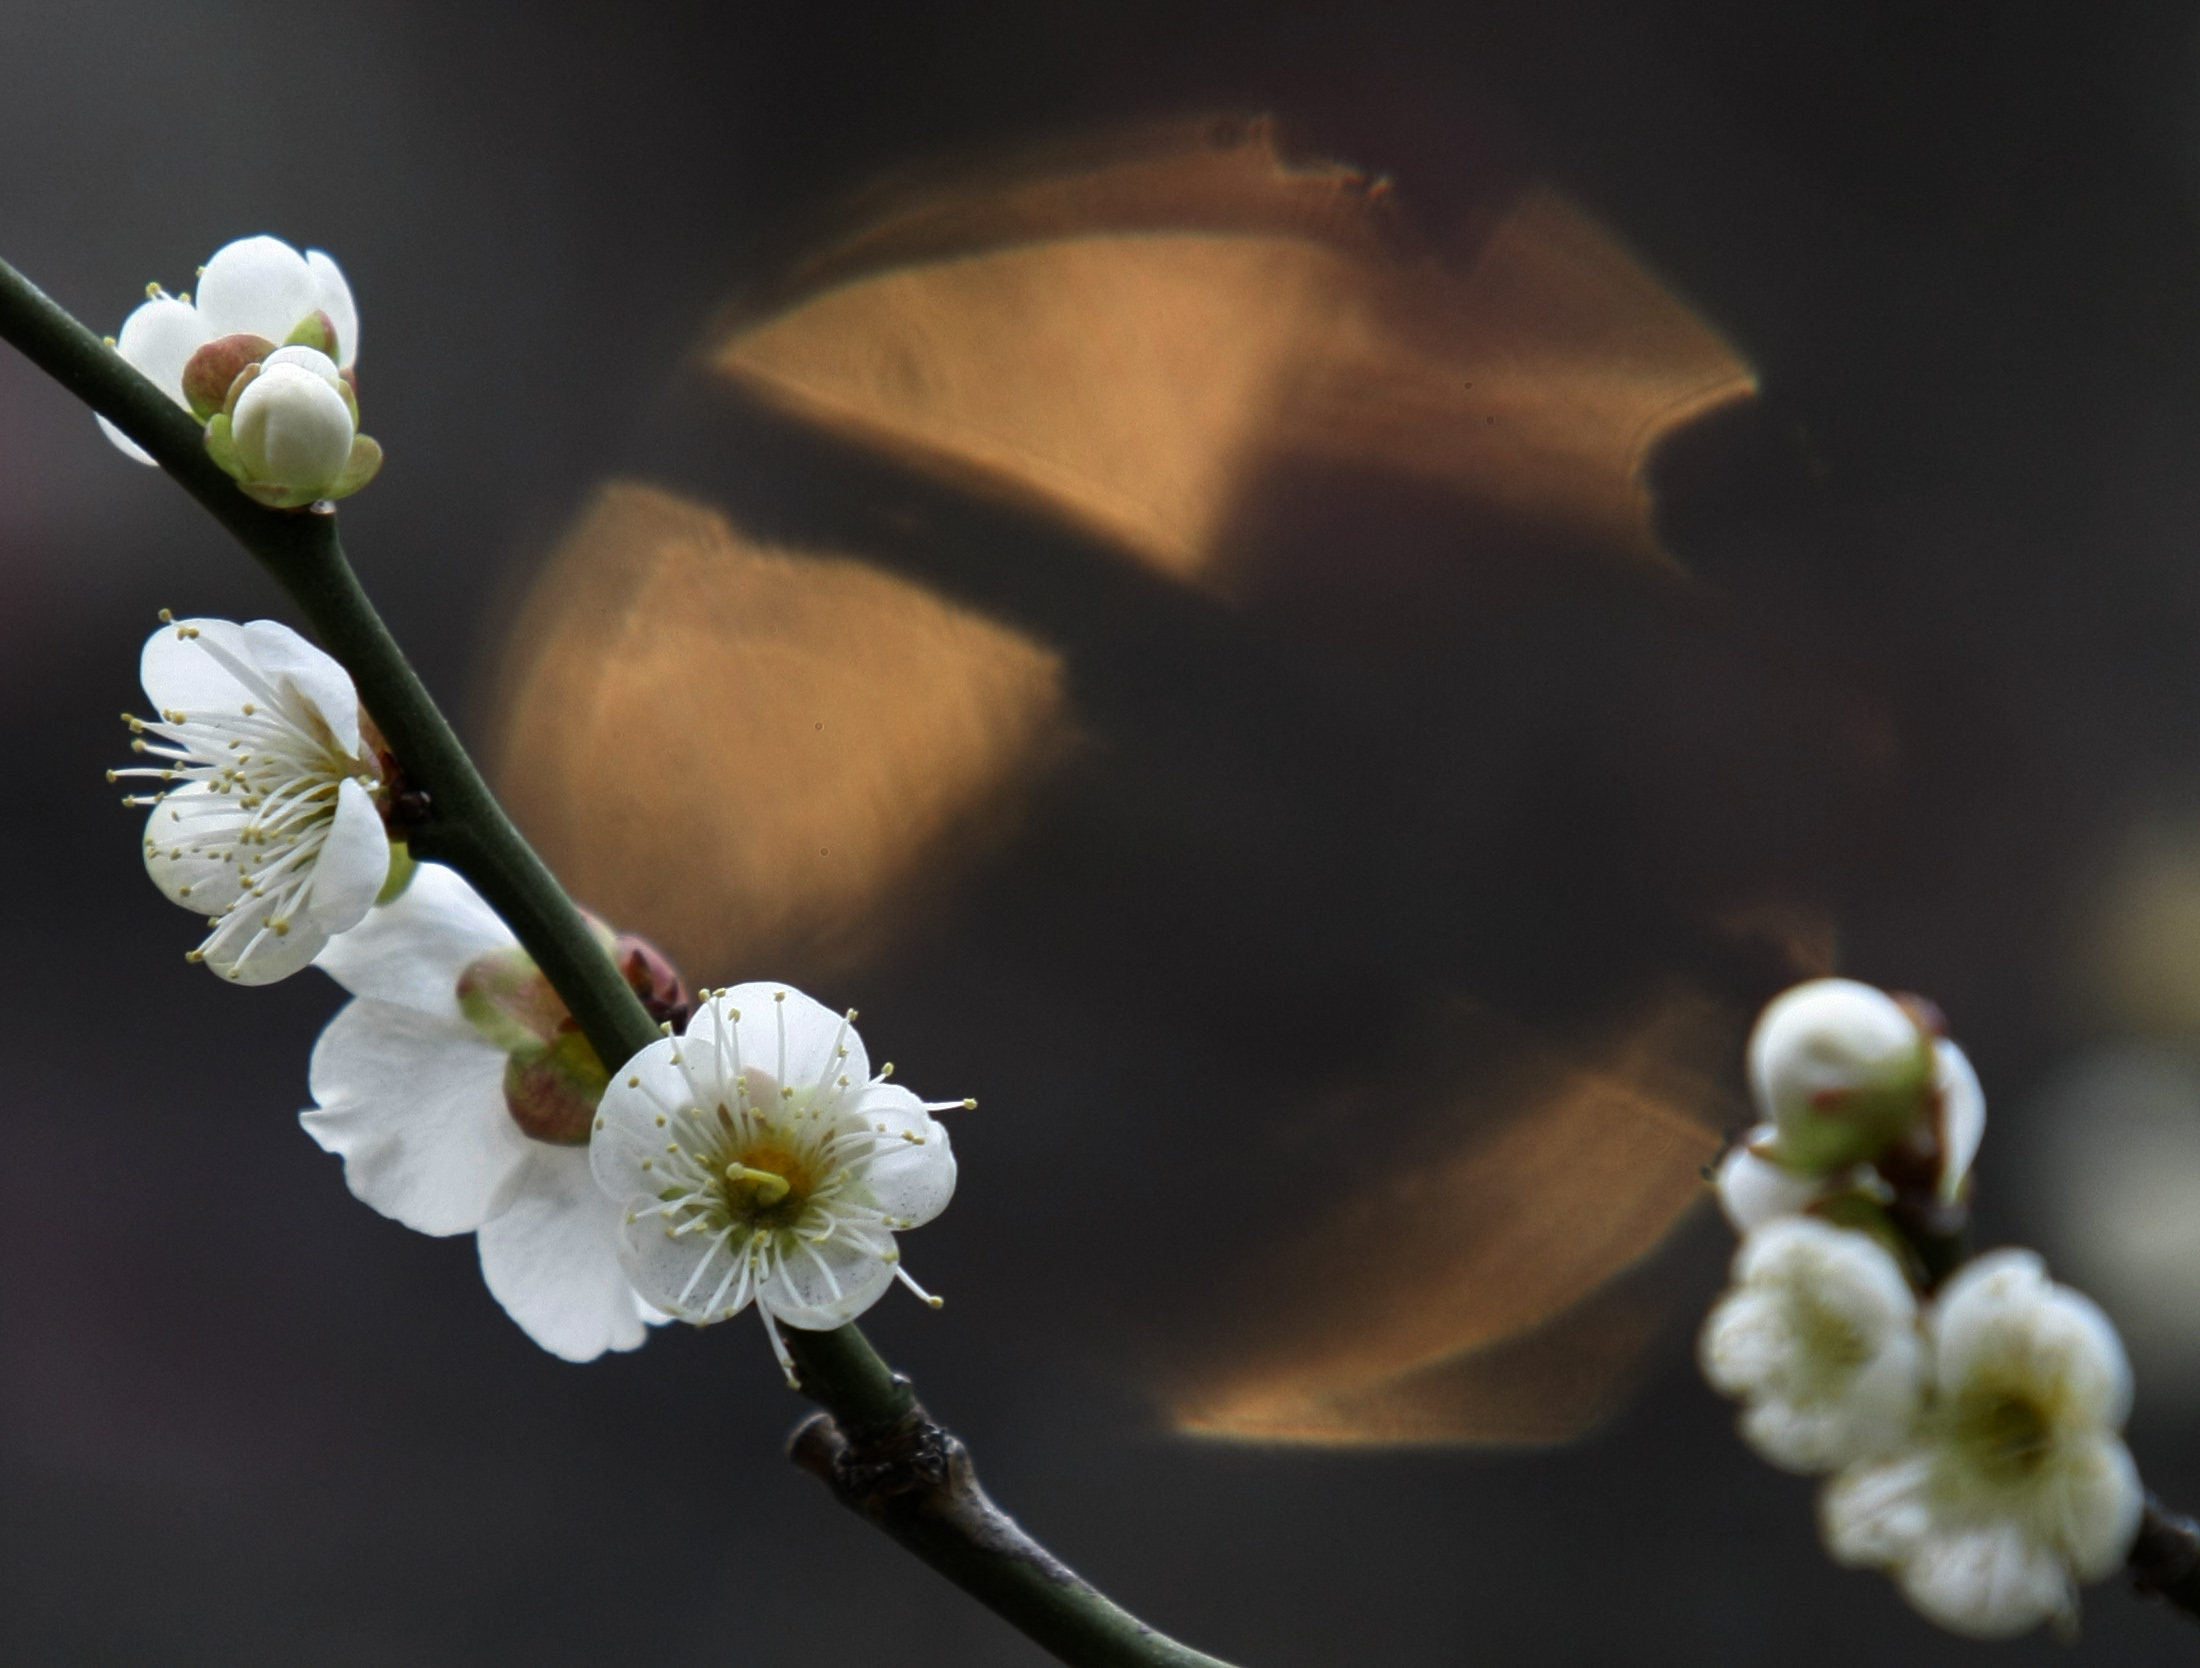 A white plum tree in blossom is seen at Yushimatenjin temple in Tokyo